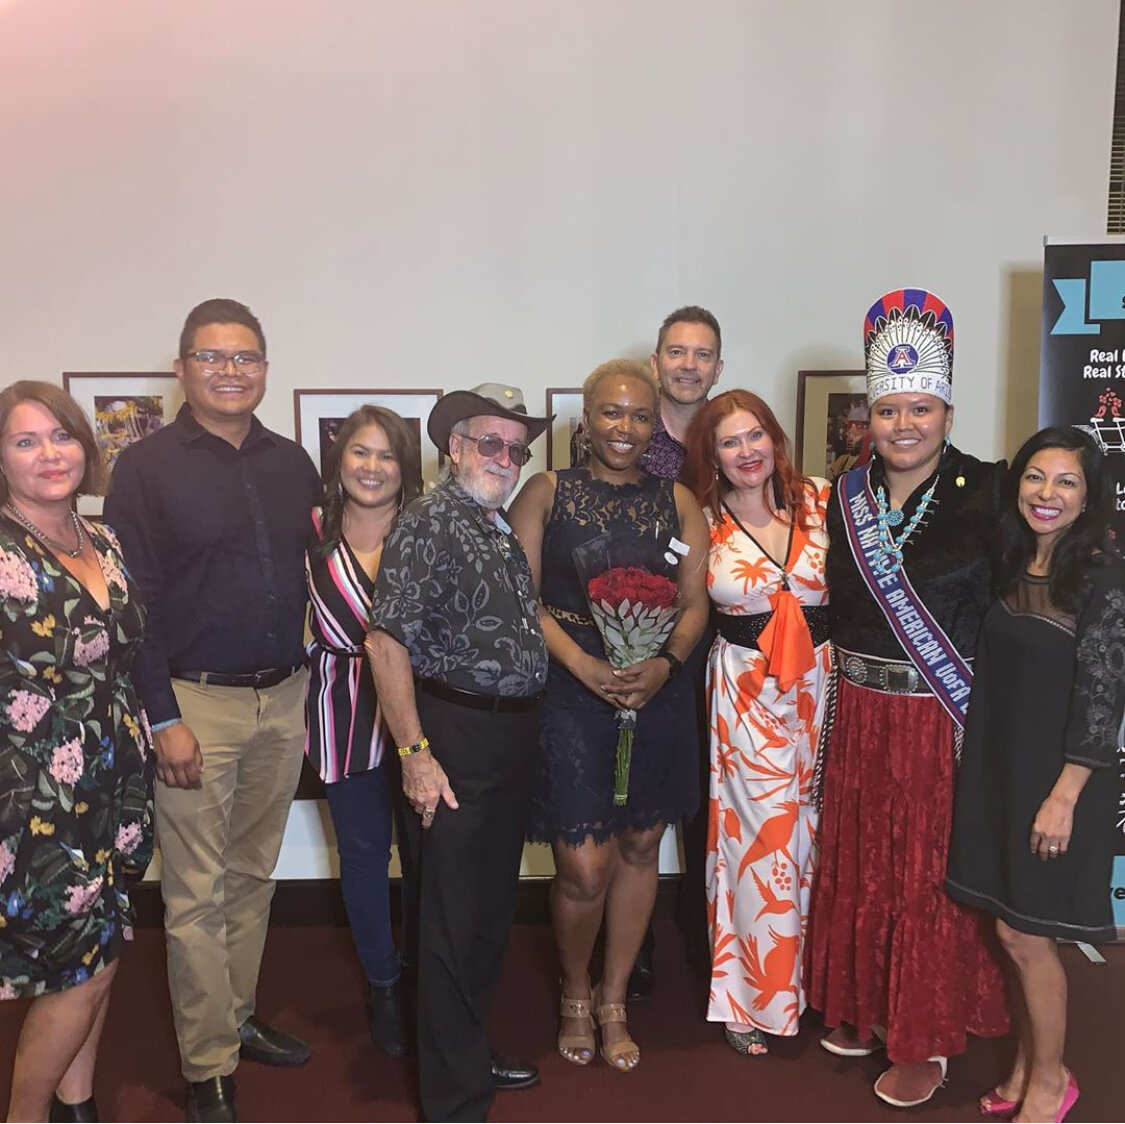 The Storytellers, myself and Miss Native America U of A